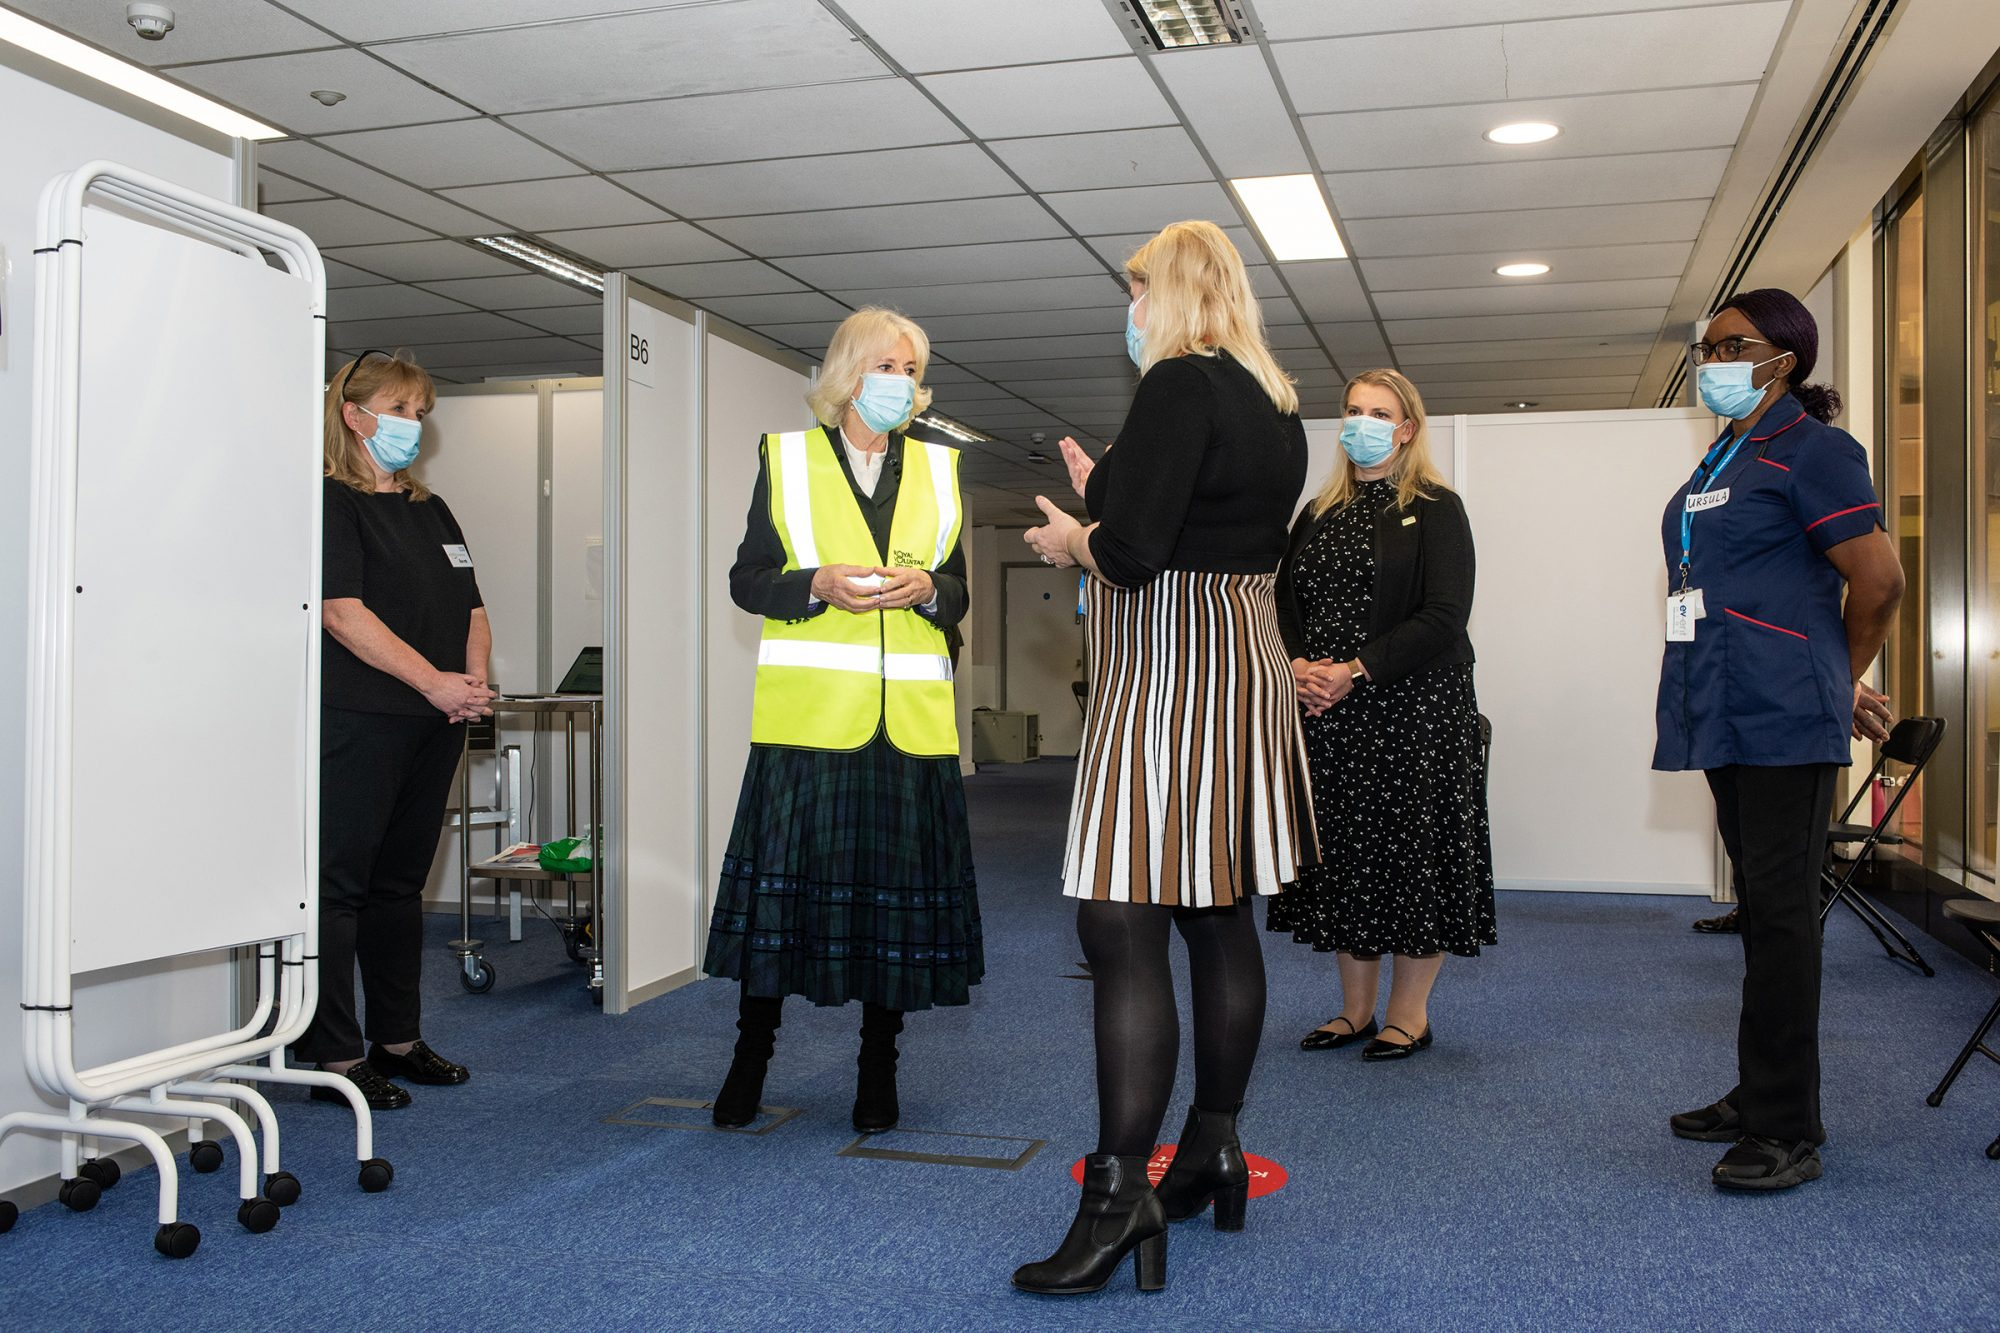 Royal Voluntary Service President, HRH The Duchess of Cornwall, speaks to Chief Nurse of NHS North West London, Pippa Nightingale, while visiting Wembley Park Vaccination Centre to meet NHS Volunteer Responder Stewards.